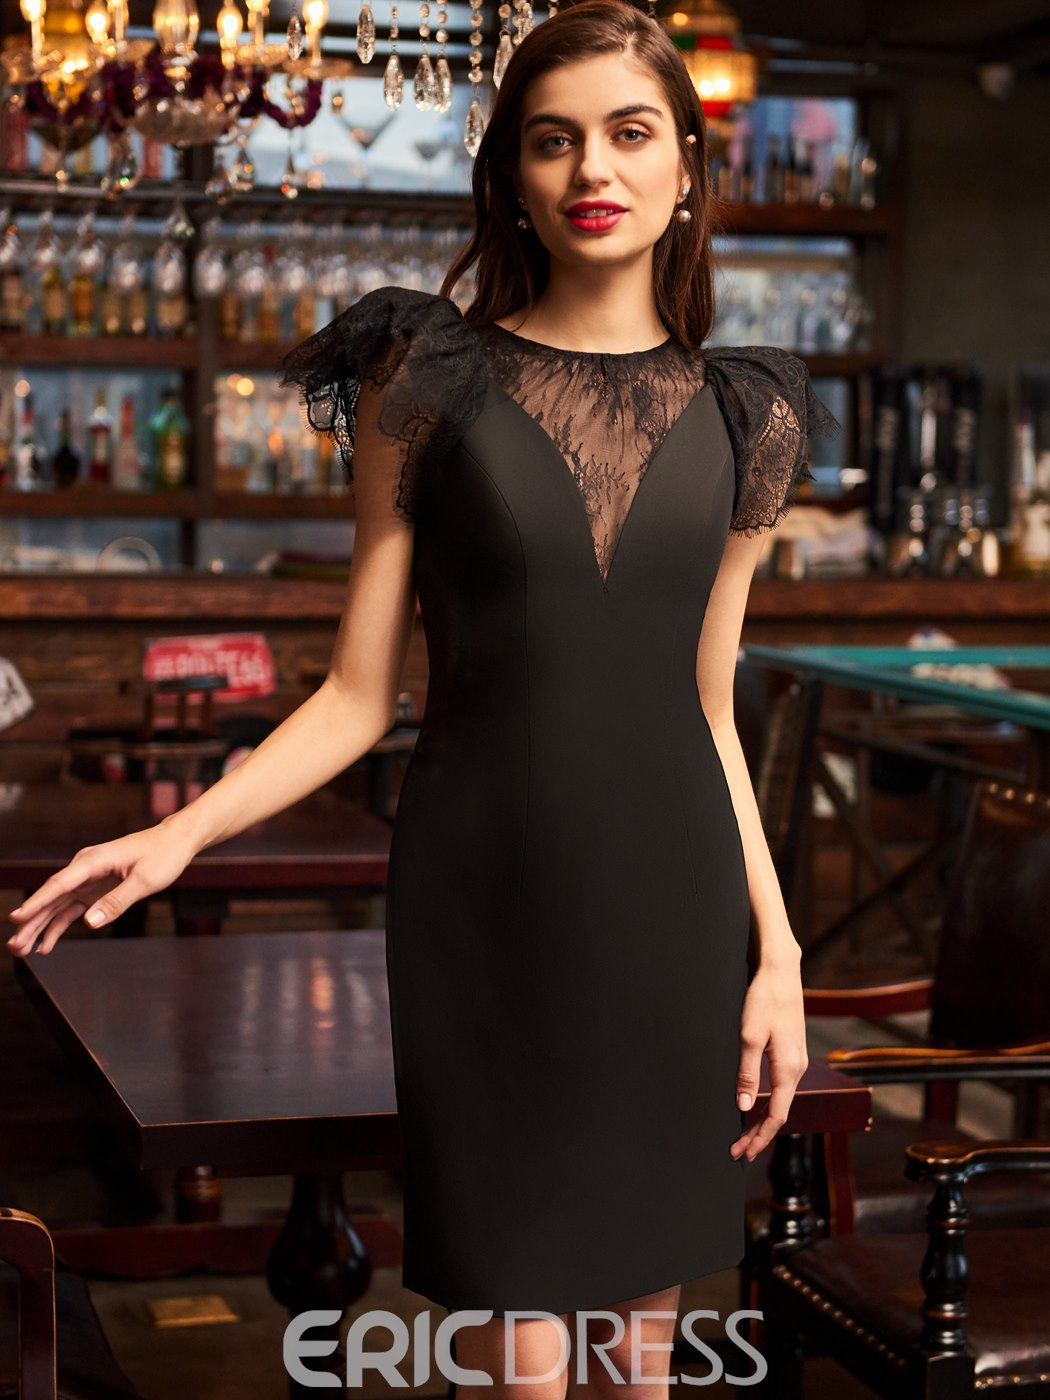 Ericdress Lace Cap Sleeve Knee Length Black Cocktail Dress